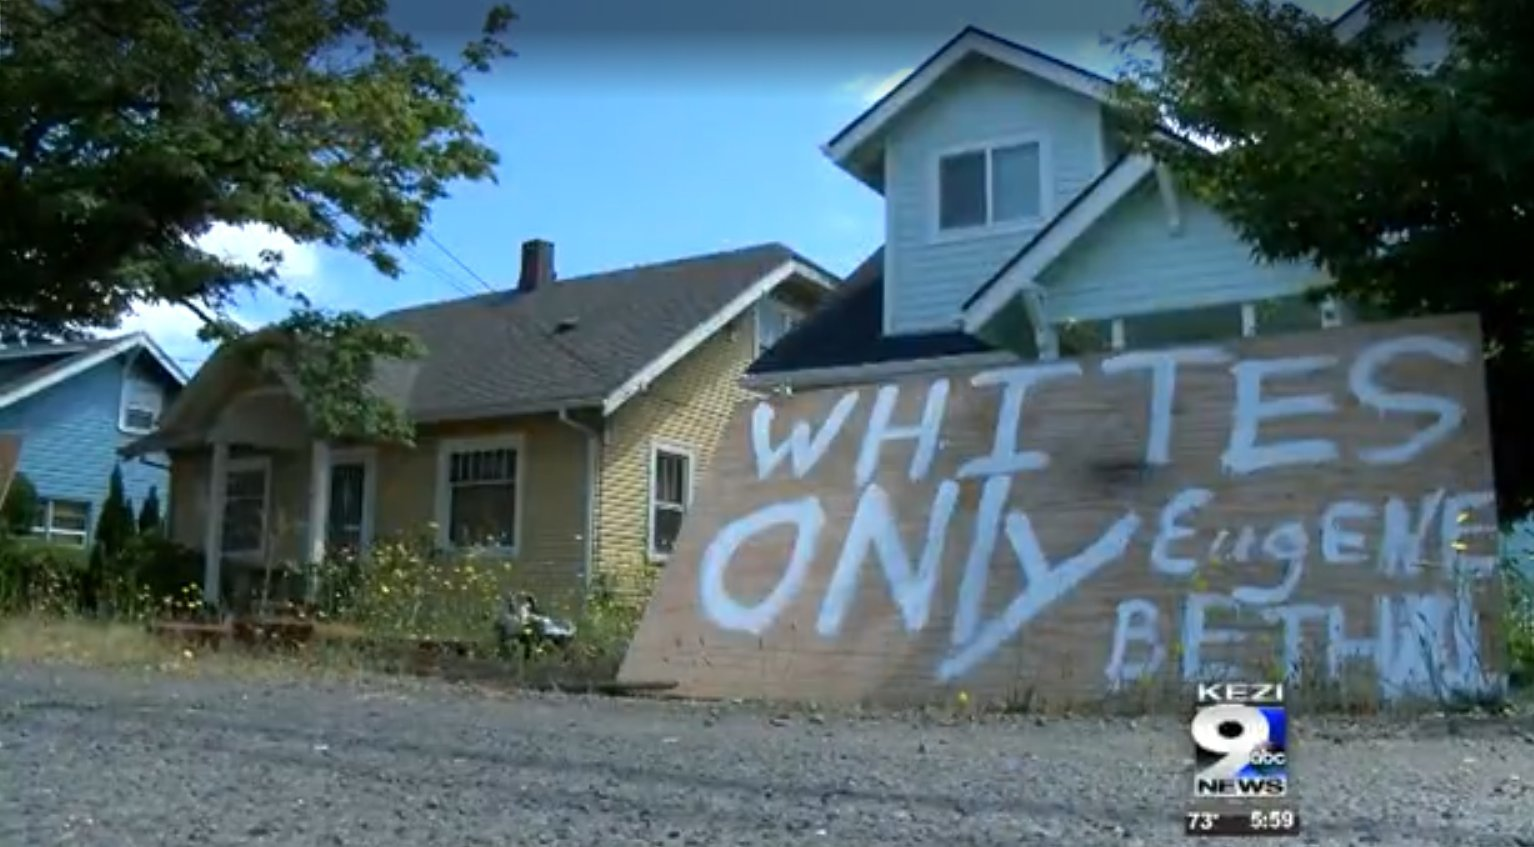 For sale pacific northwest home to 39 whites only 39 for Pacific northwest homes